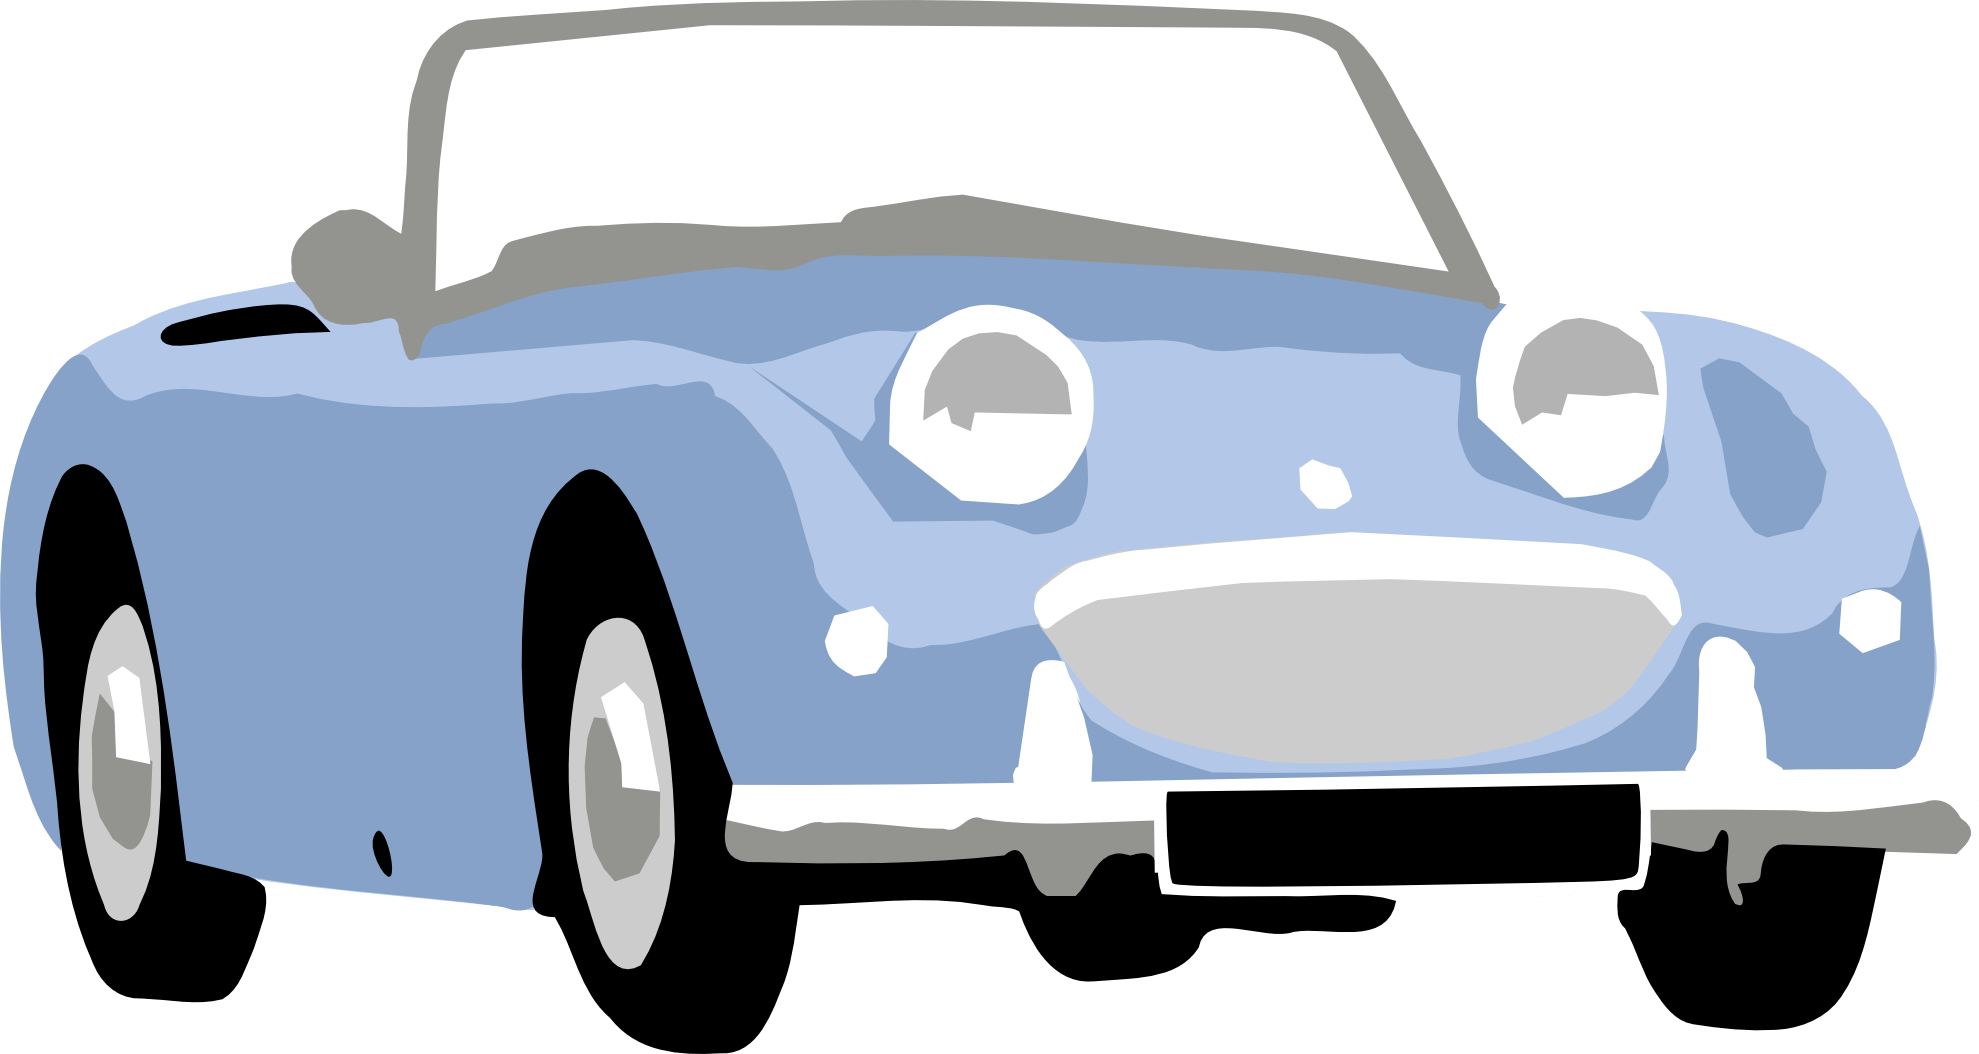 Vintage car clipart vector svg transparent download Classic Muscle Car Clipart at GetDrawings.com | Free for personal ... svg transparent download